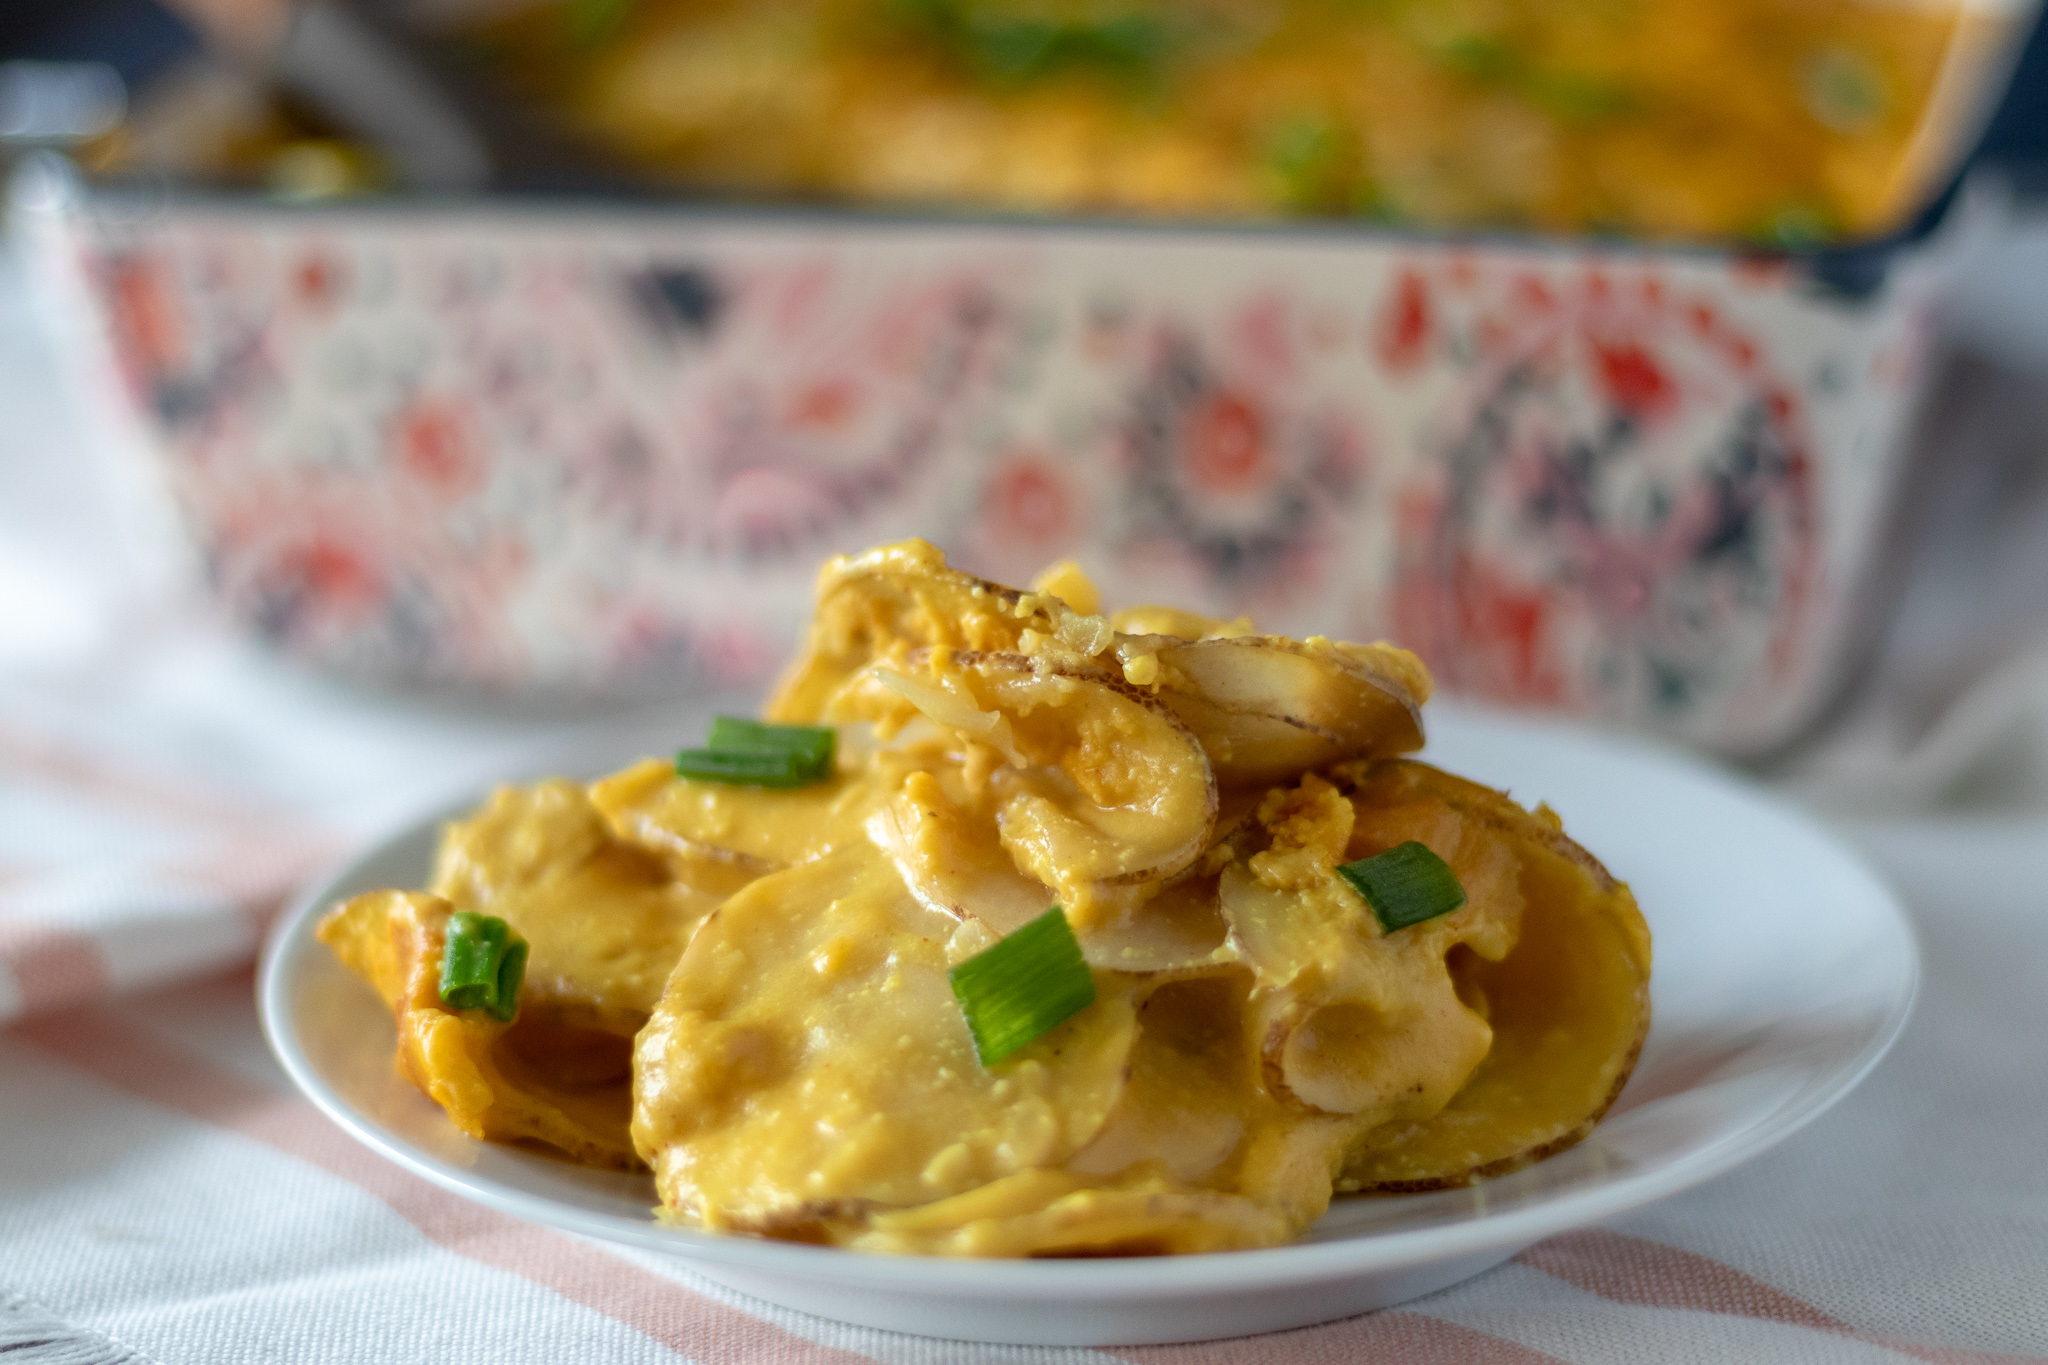 I love potatoes and I love cheese. So what's not to love about these super easy cheesy vegan scalloped potatoes. All you need is a pretty simple vegan cheese sauce, some thinly sliced potatoes, an 8x8 pan, and you are on your way to a veganized classic!